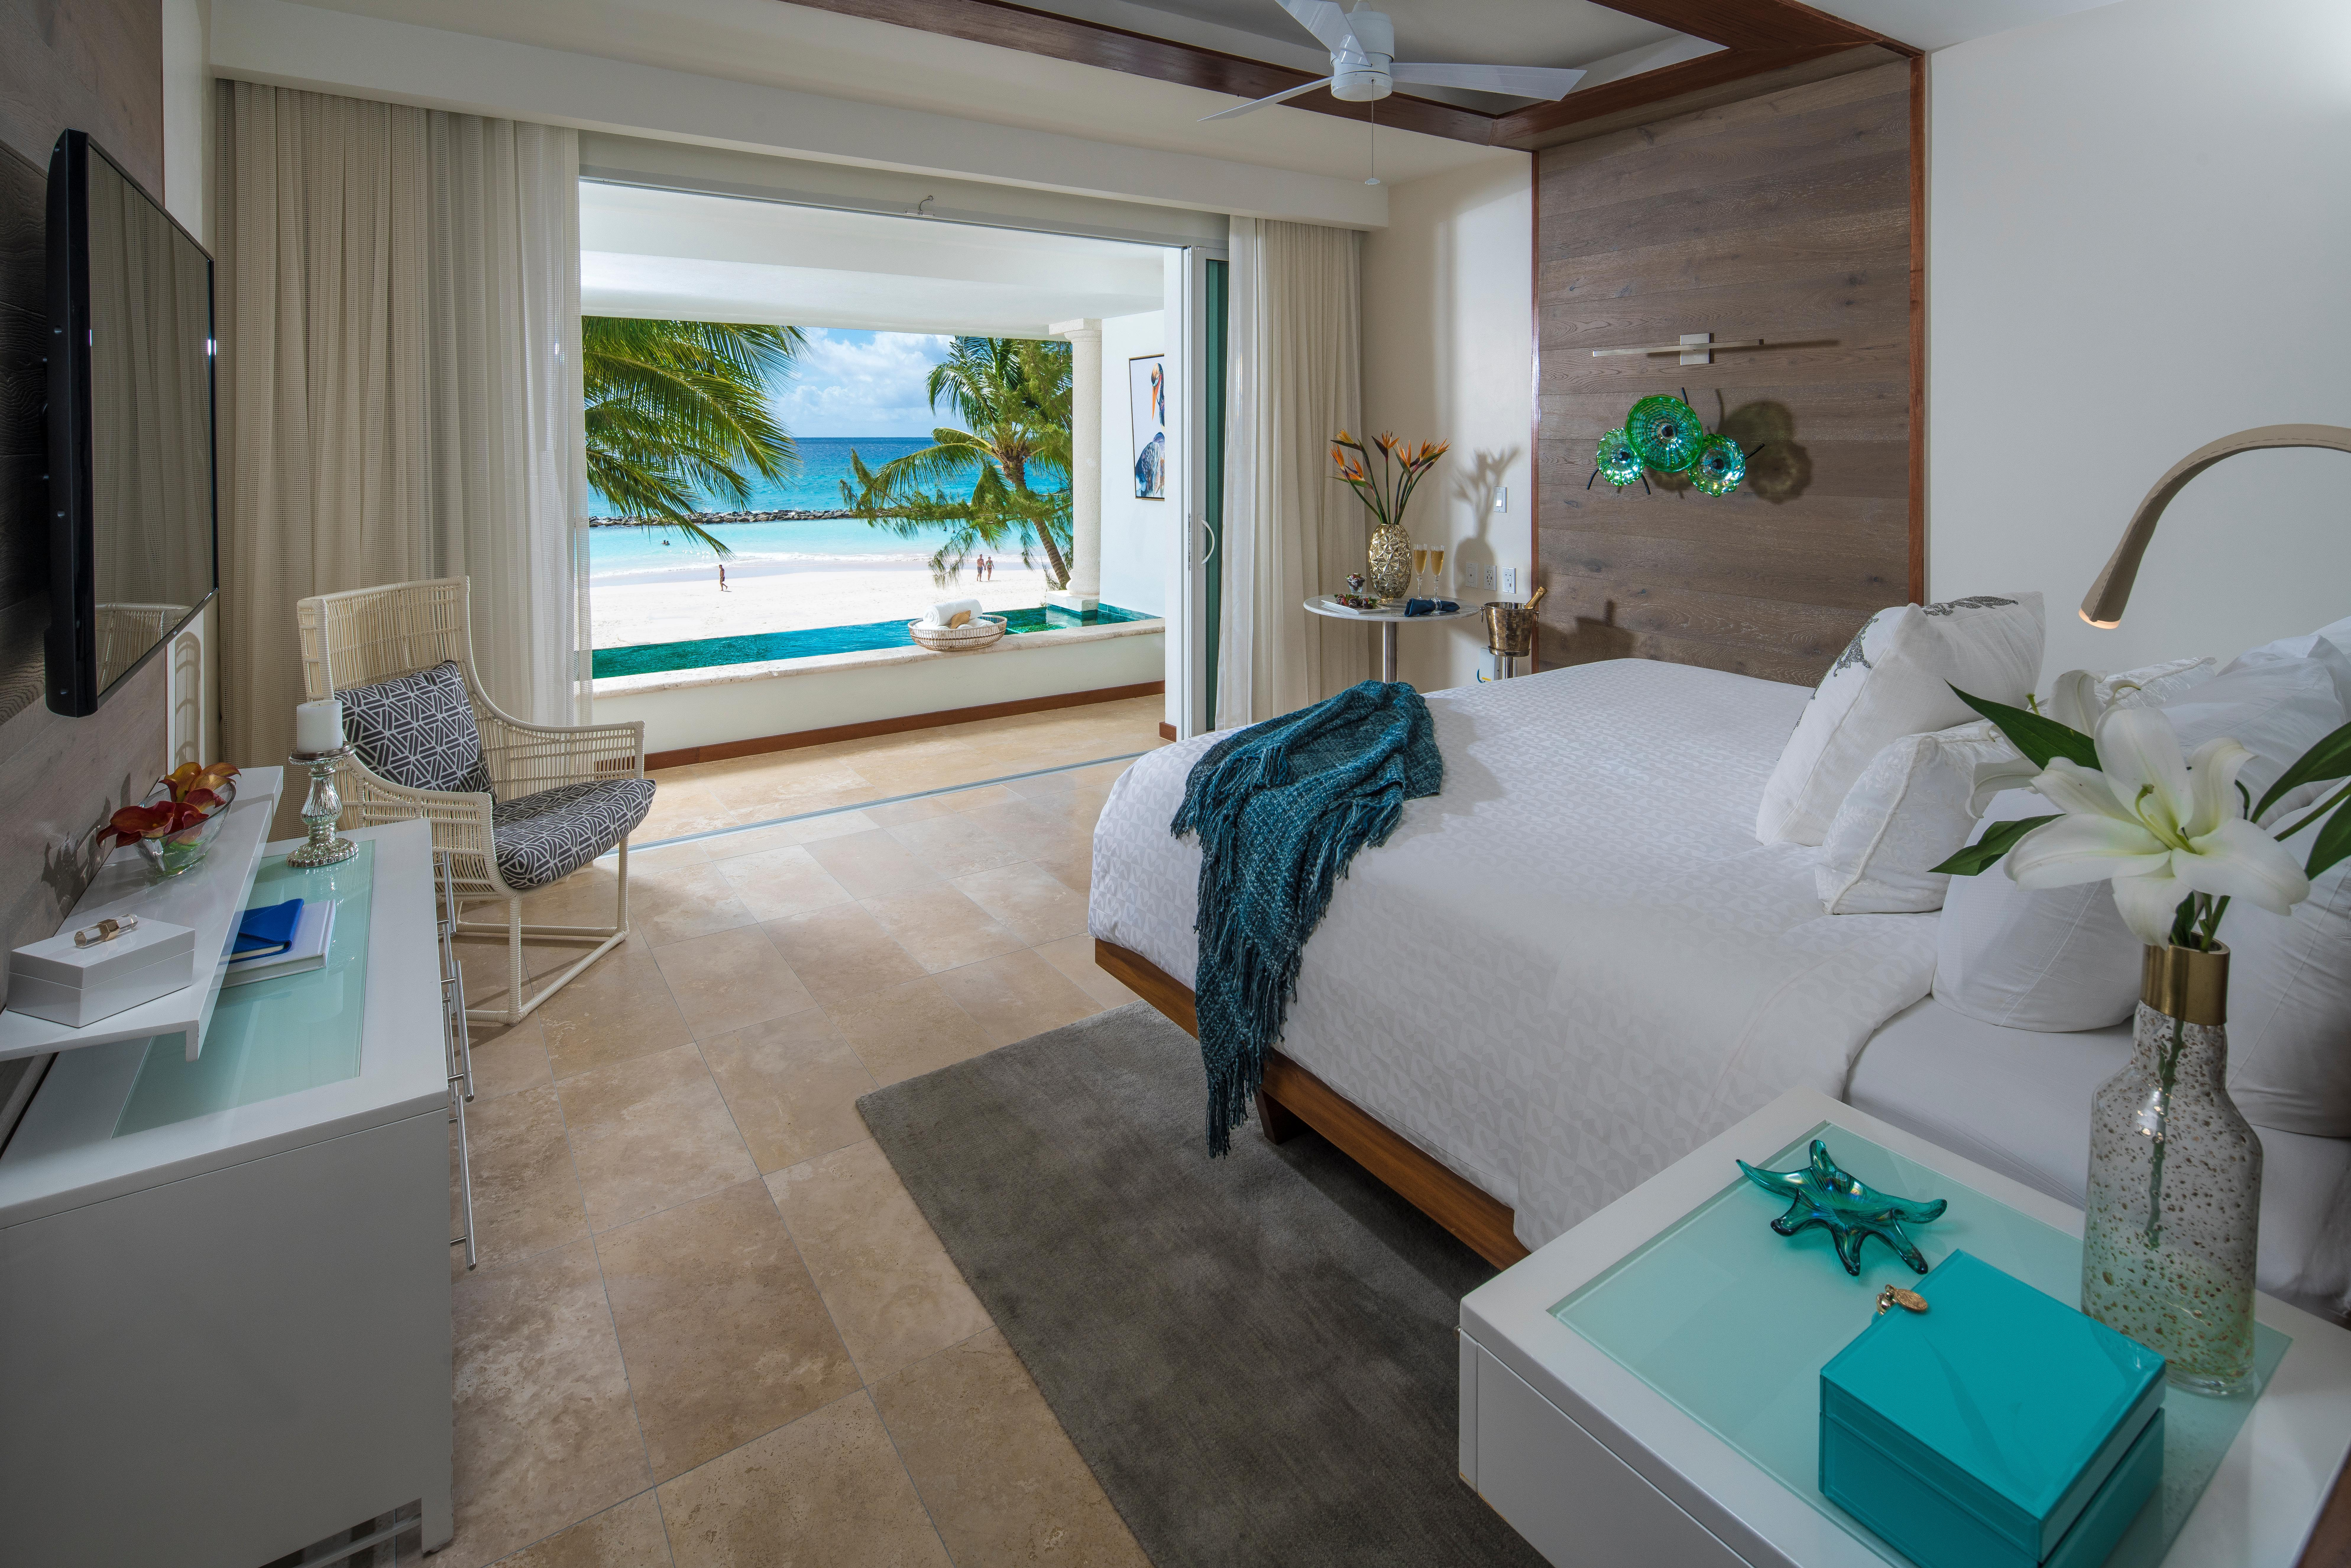 Since I had a king-sized, high thread count sheet-adorned bed all to myself, I wasn't woken up all night long by my husband's snores, or him telling me I was doing the same. (Image: Courtesy Sandals Royal Barbados)